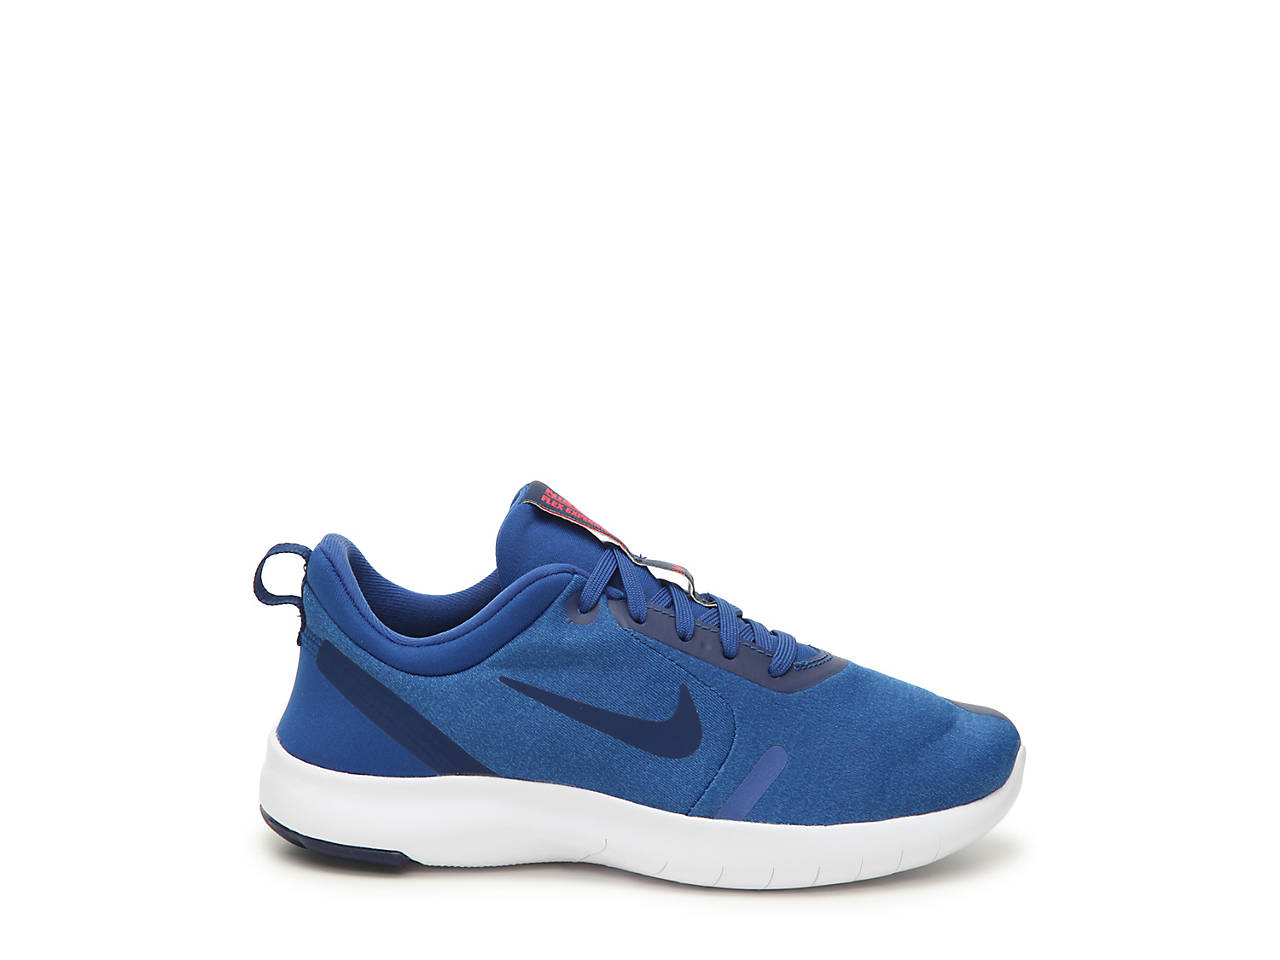 918898c44a22 Nike Flex Experience RN 8 Youth Running Shoe Kids Shoes